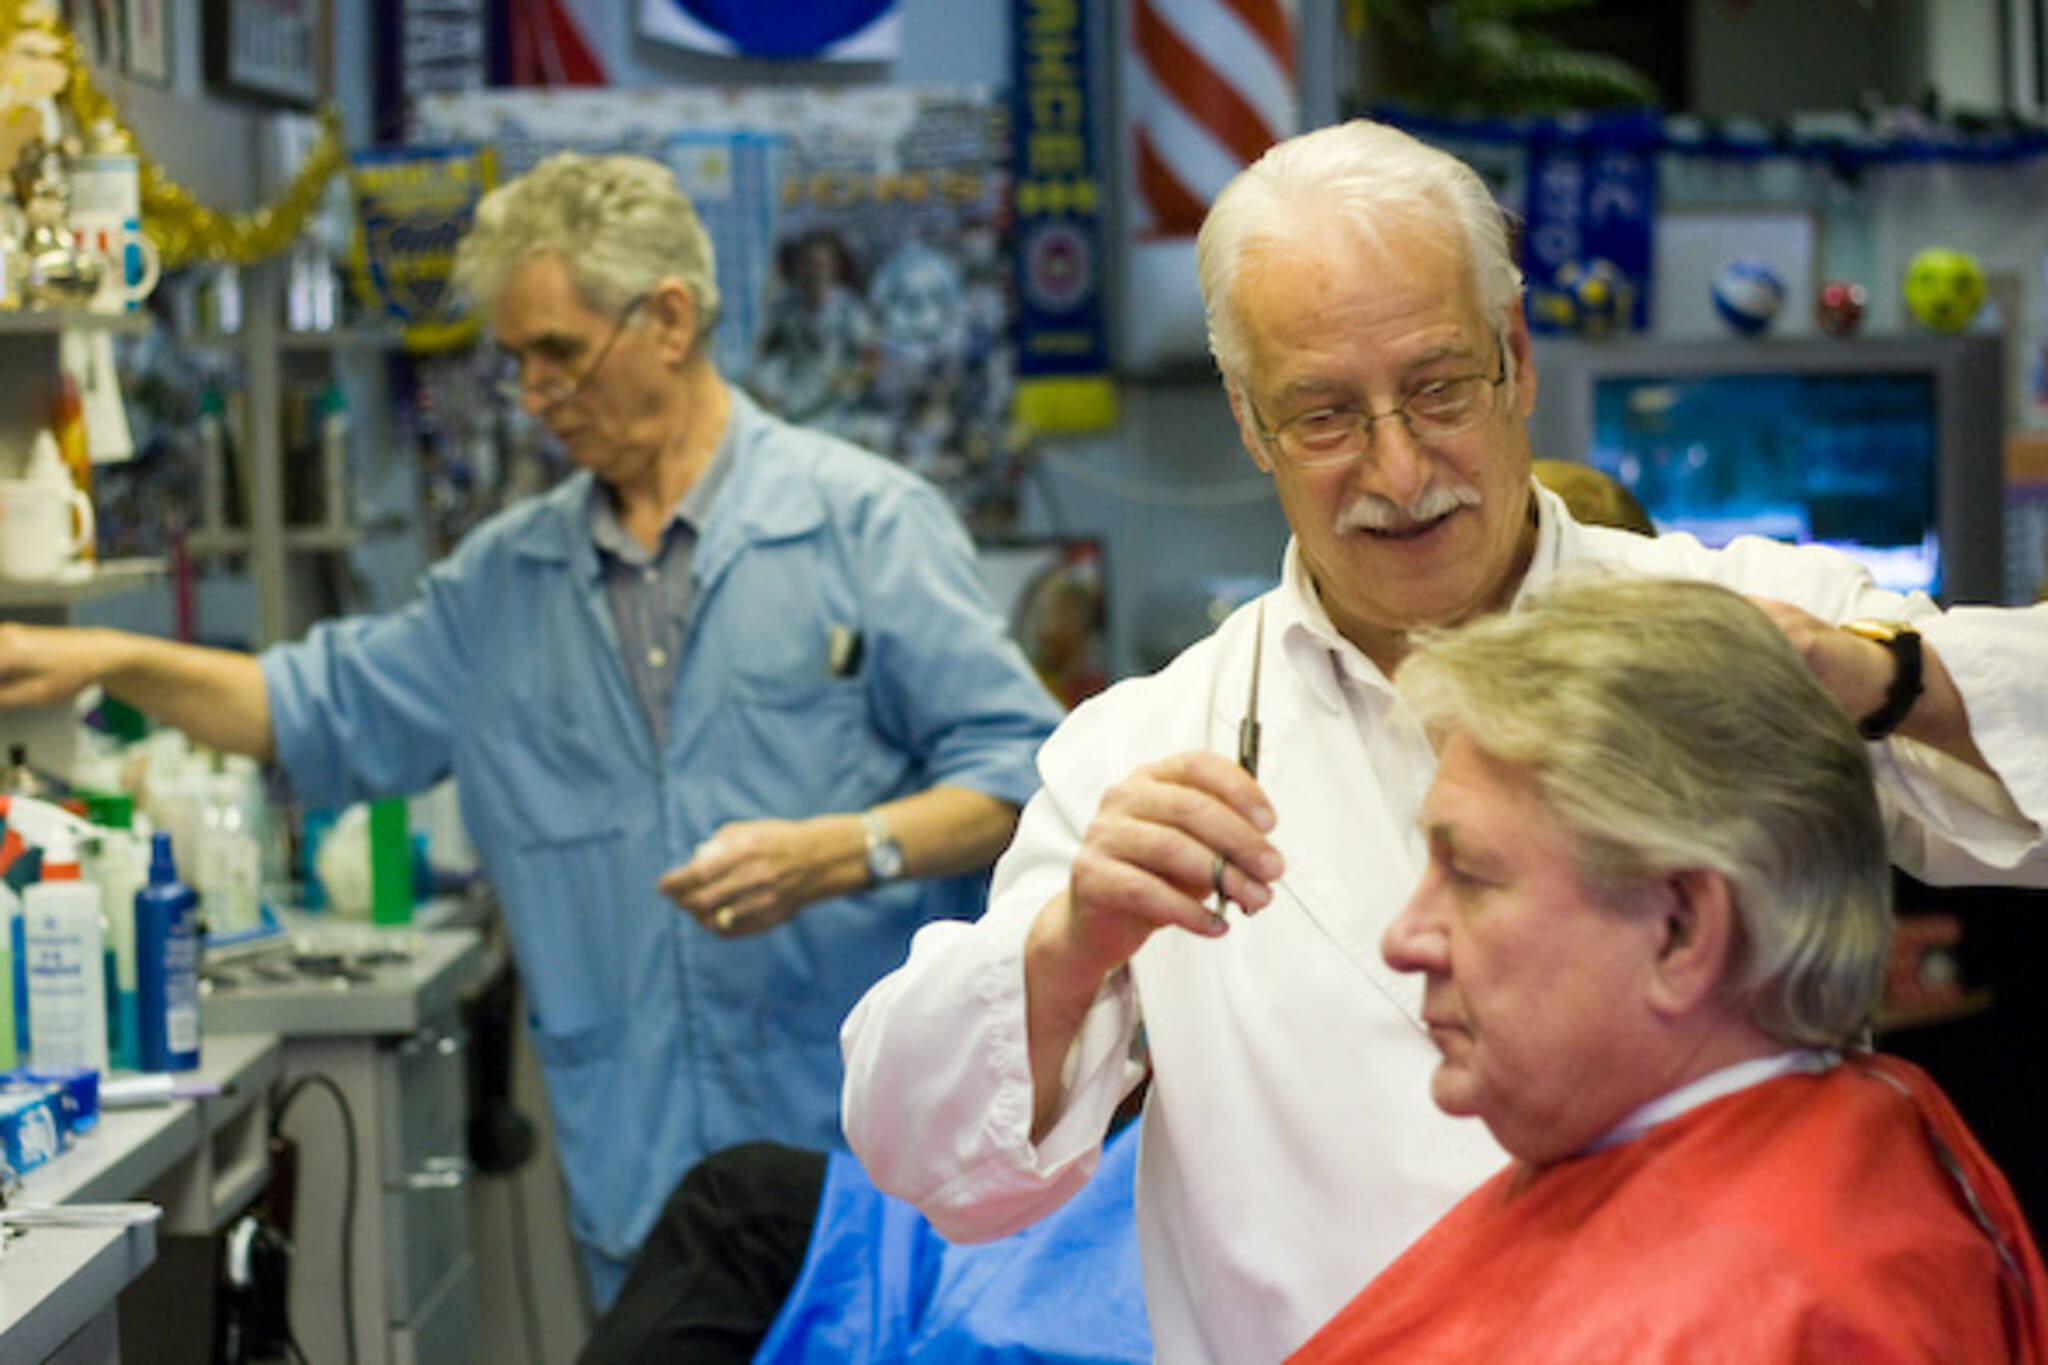 Gus the Other Barber